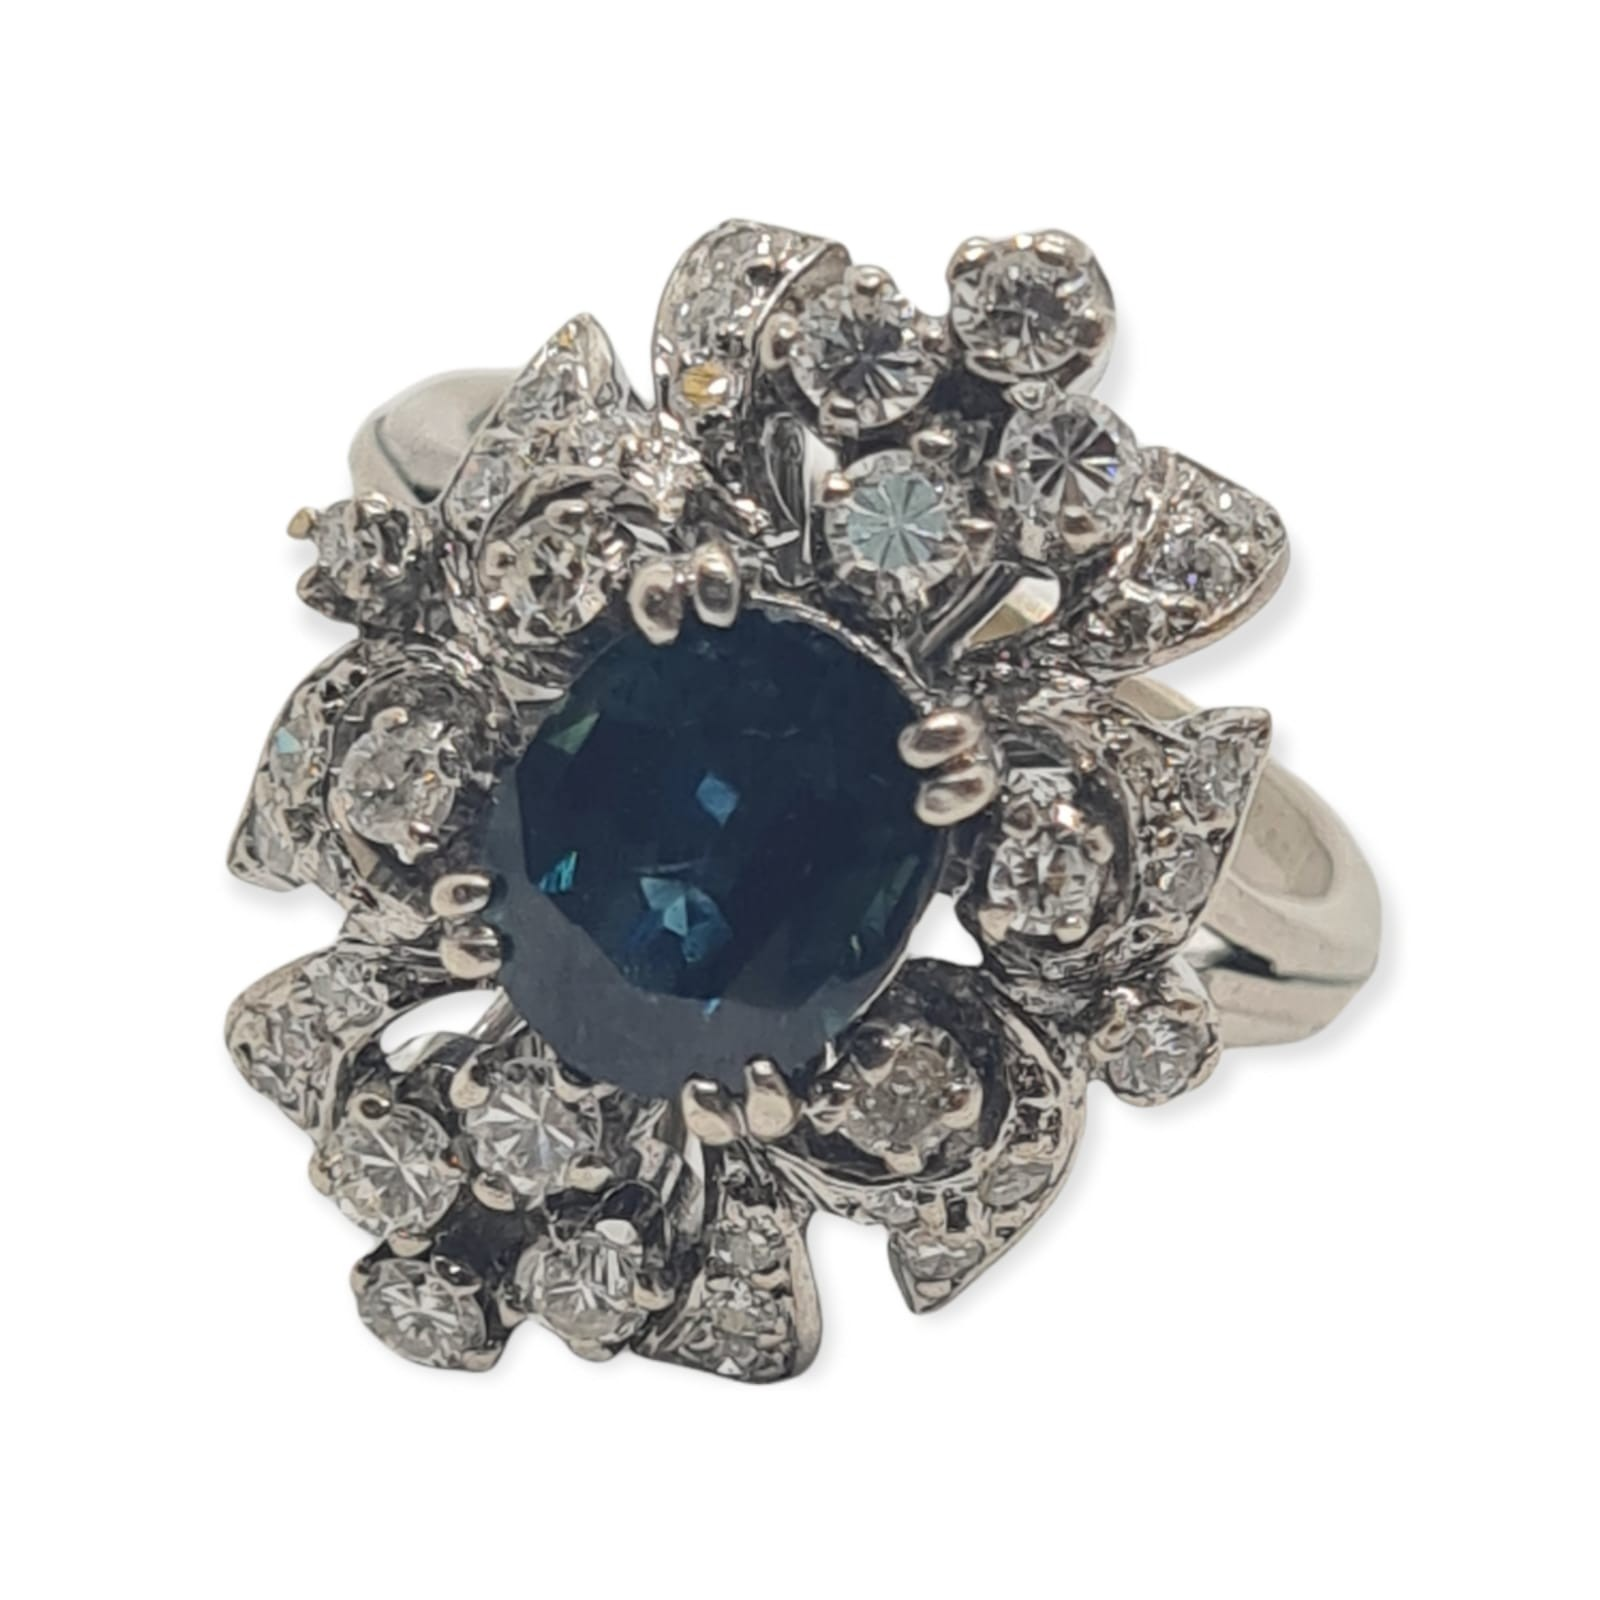 14k white gold diamond cluster ring with sapphire centre marked Tiffany & Co , weight 6.2g and